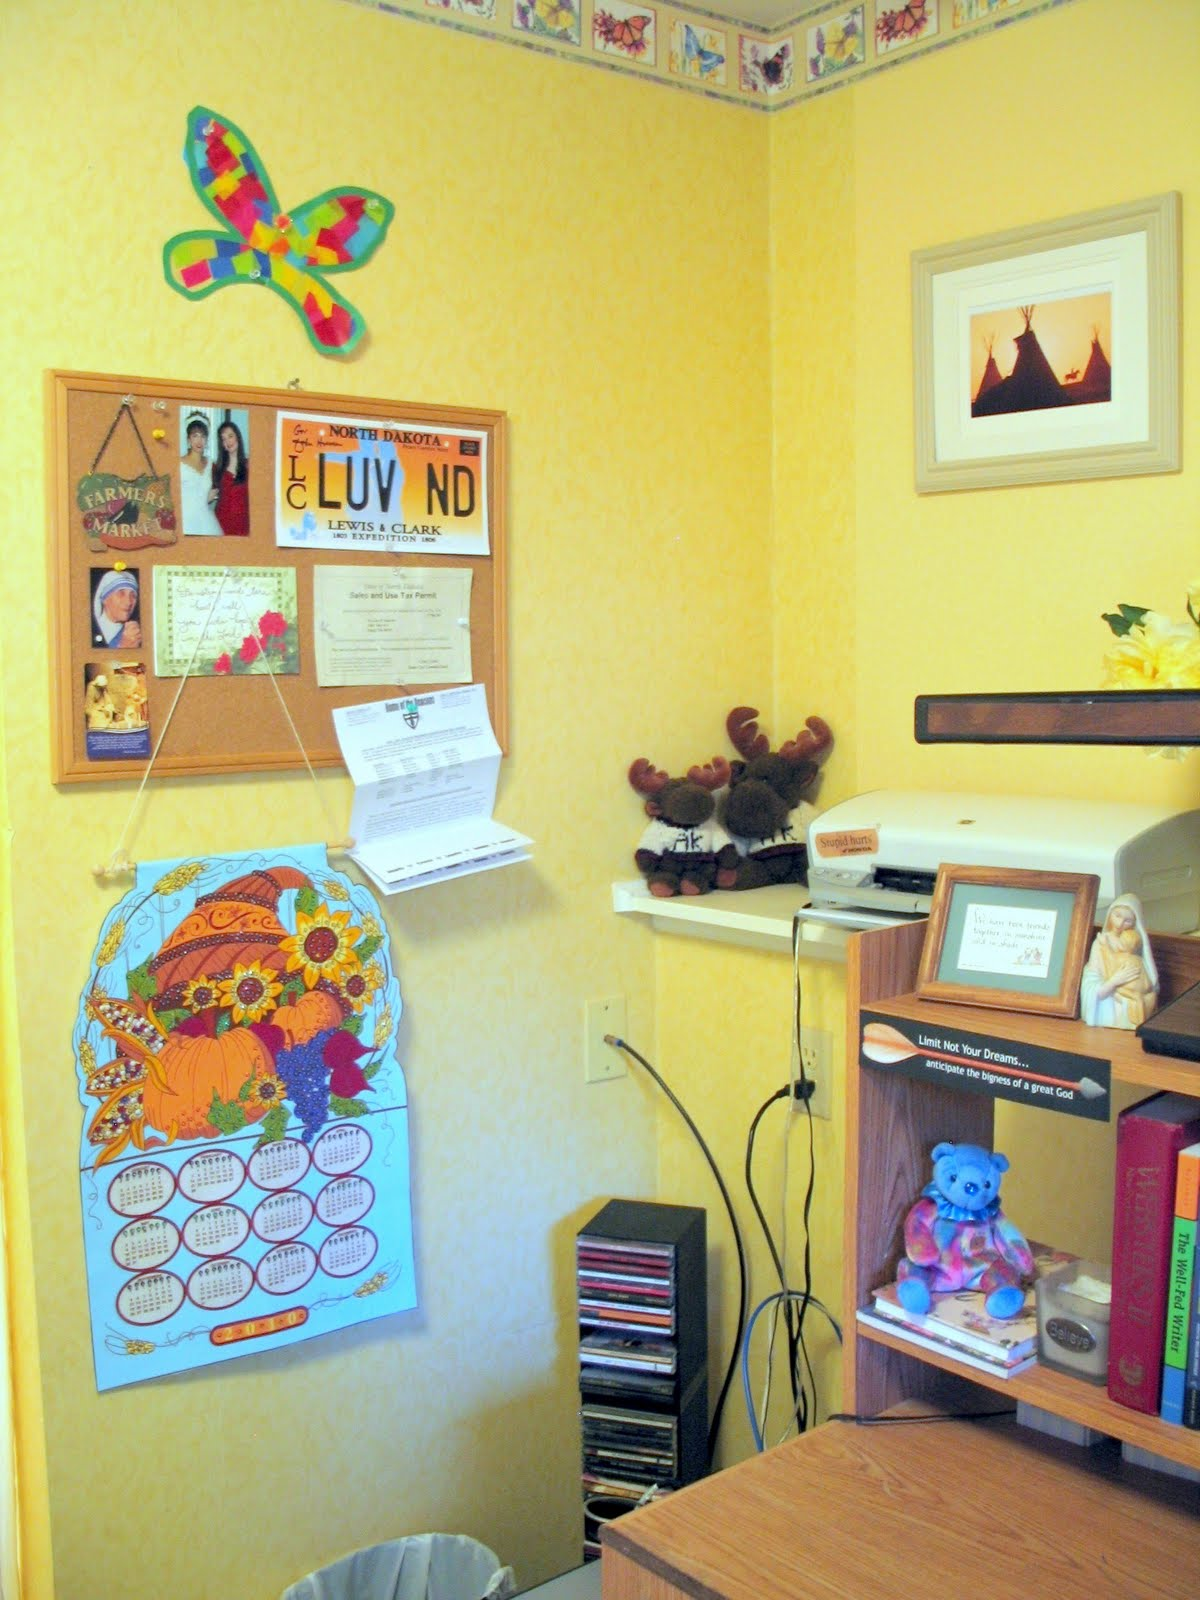 Guest Post: Creating Home Office Space that Works